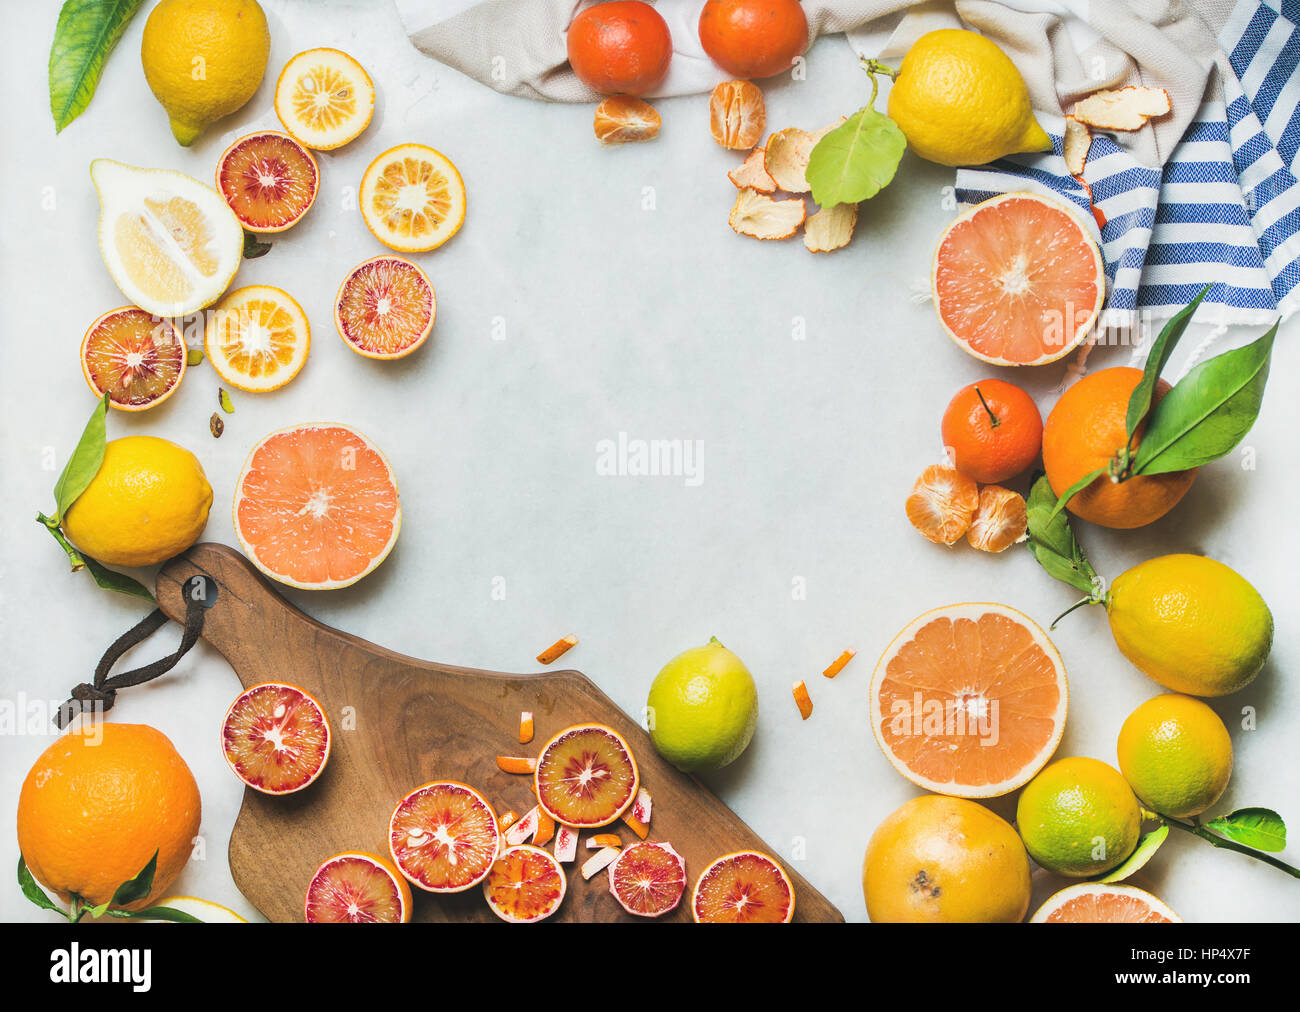 Natural fresh citrus fruits on wooden rustic board over grey marble table background, top view, copy space - Stock Image